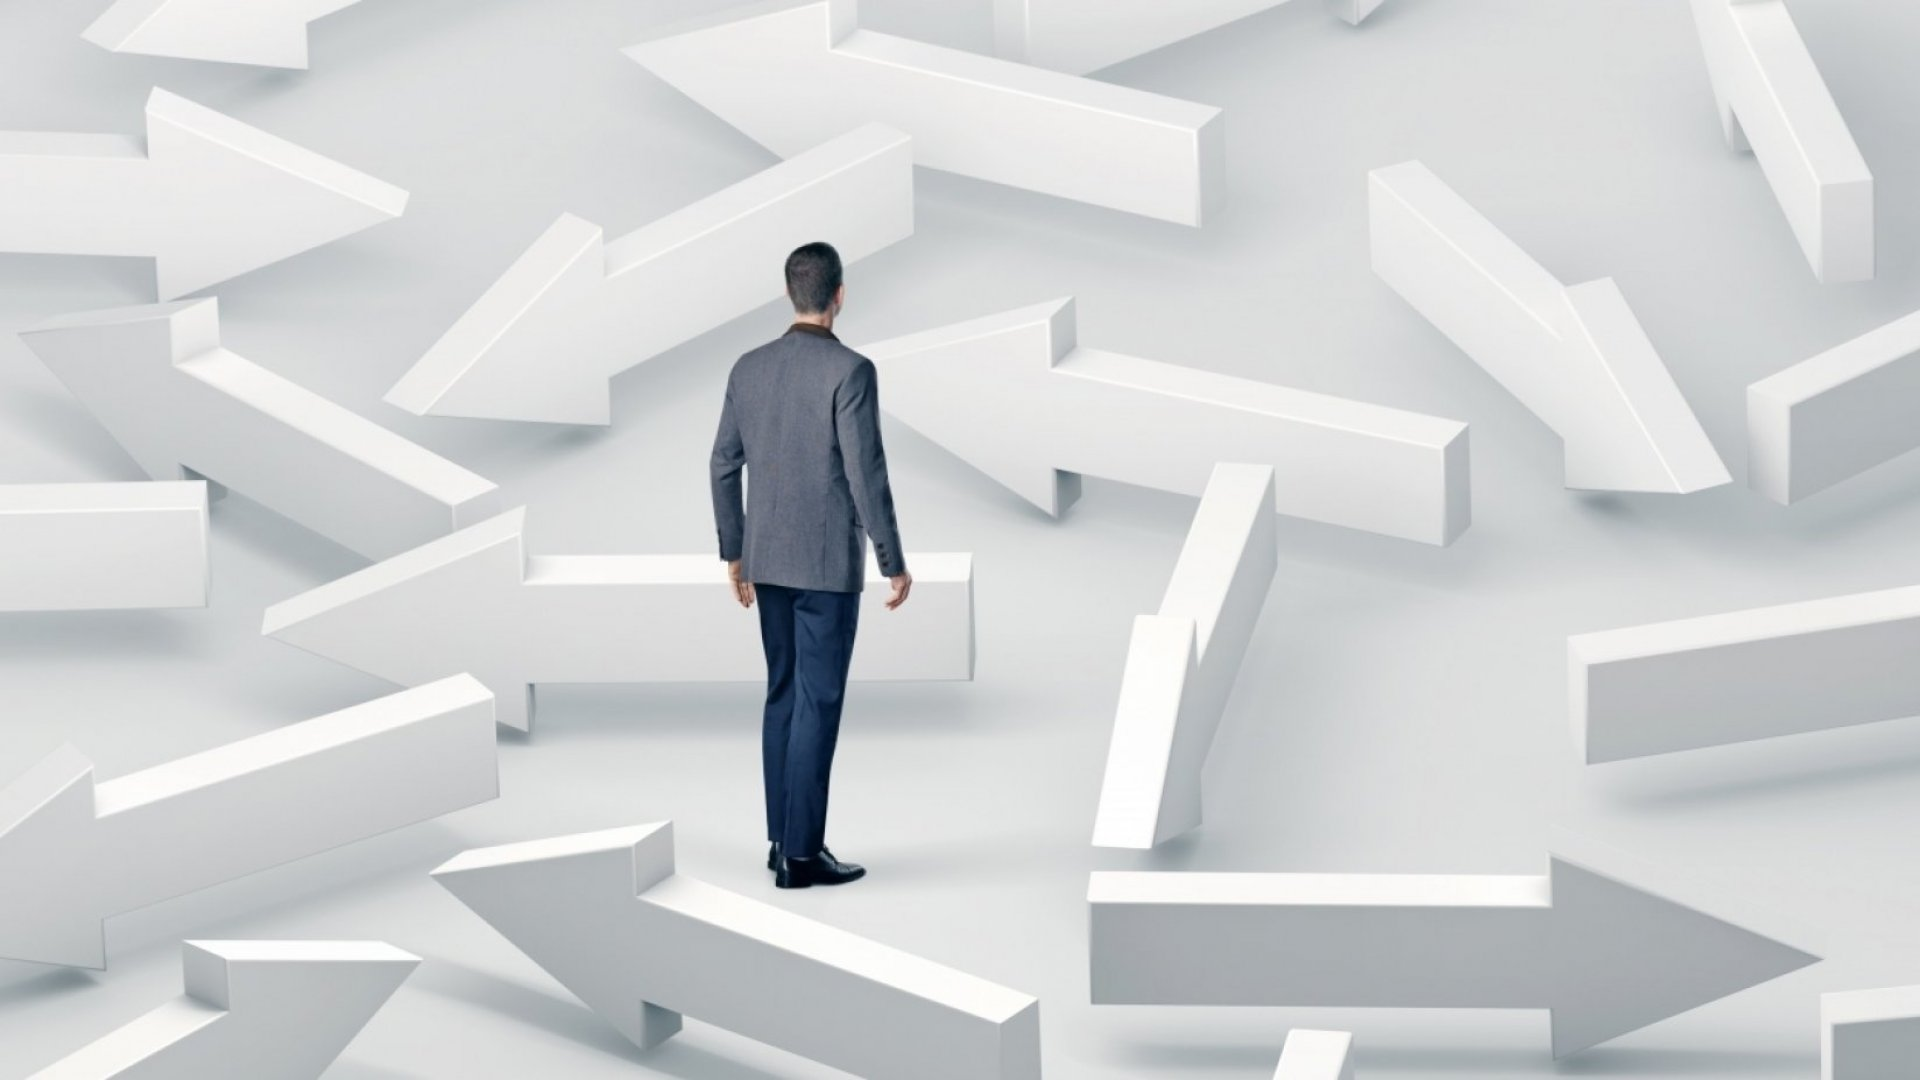 8 Reasons Why Your Boss Needs You to Make Objective Business Decisions